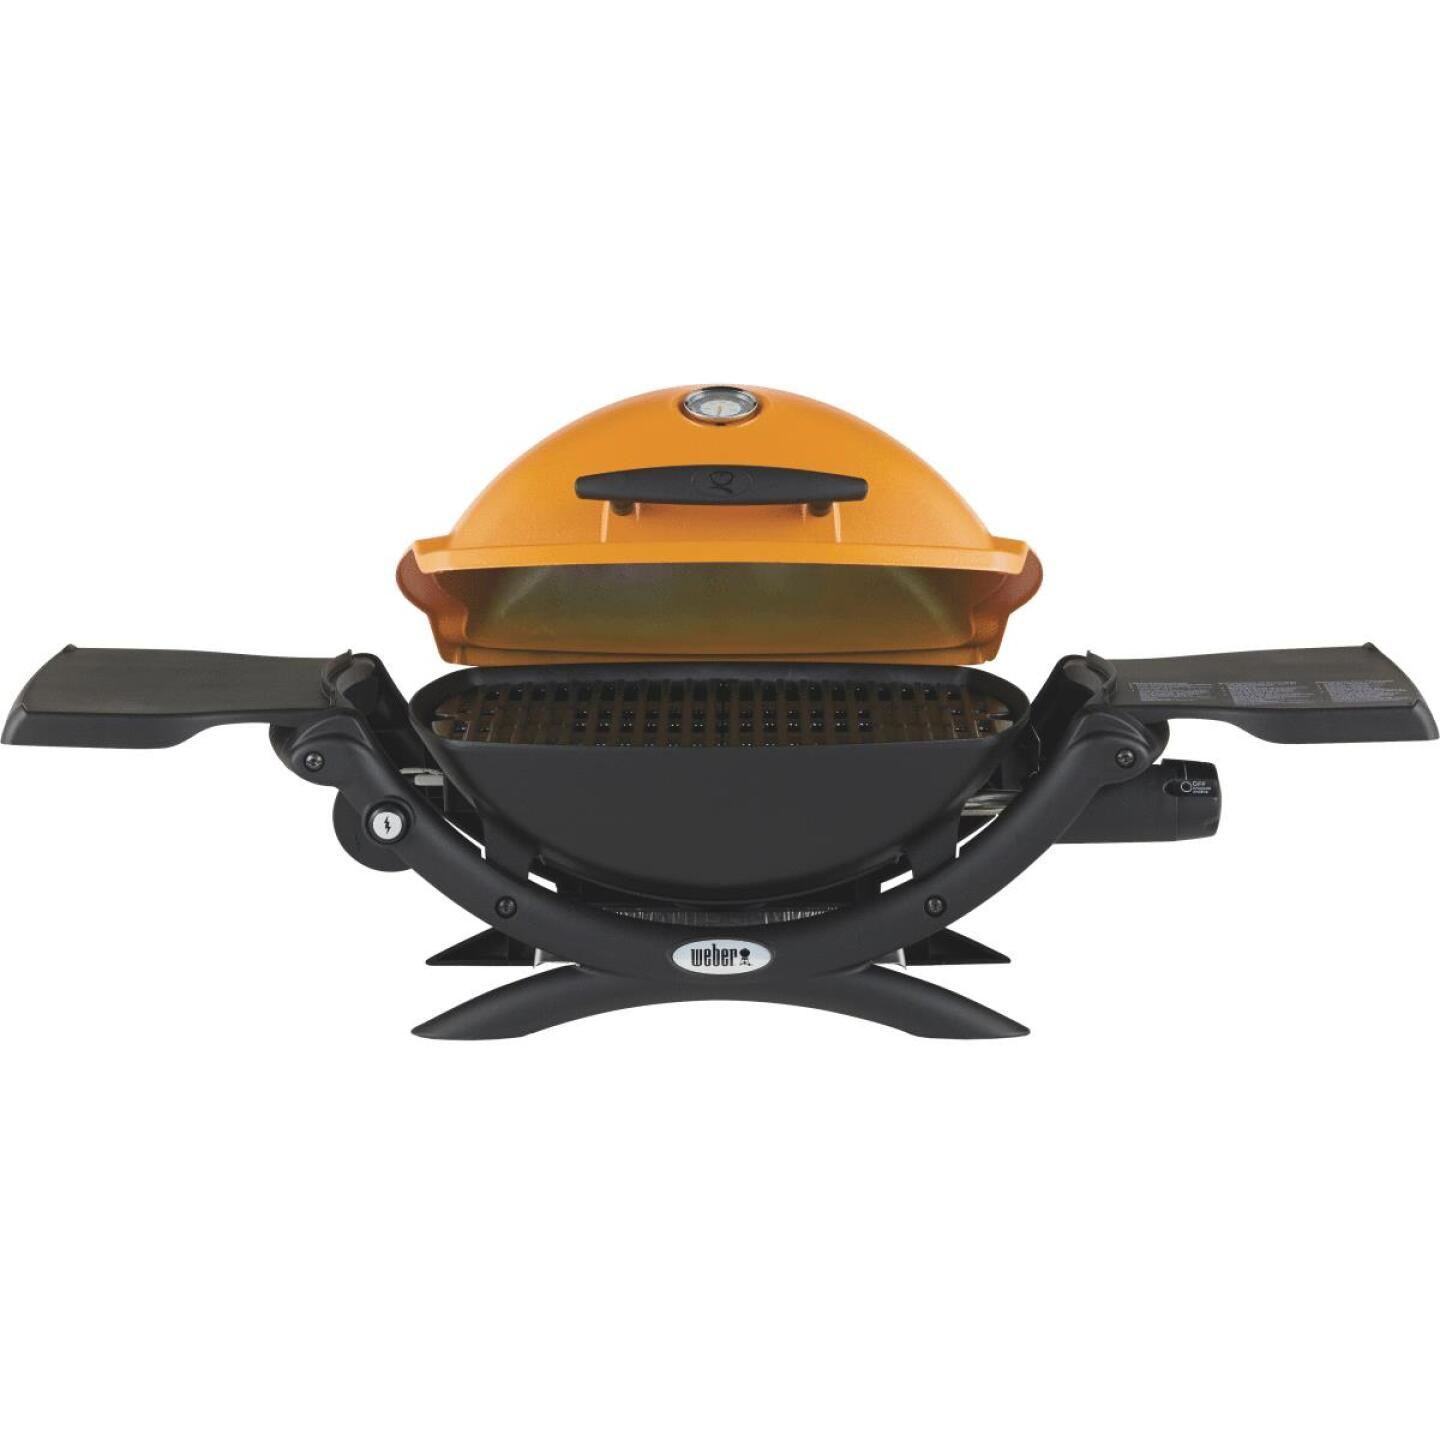 Weber Q 1200 1-Burner Orange 8,500-BTU LP Gas Grill Image 6